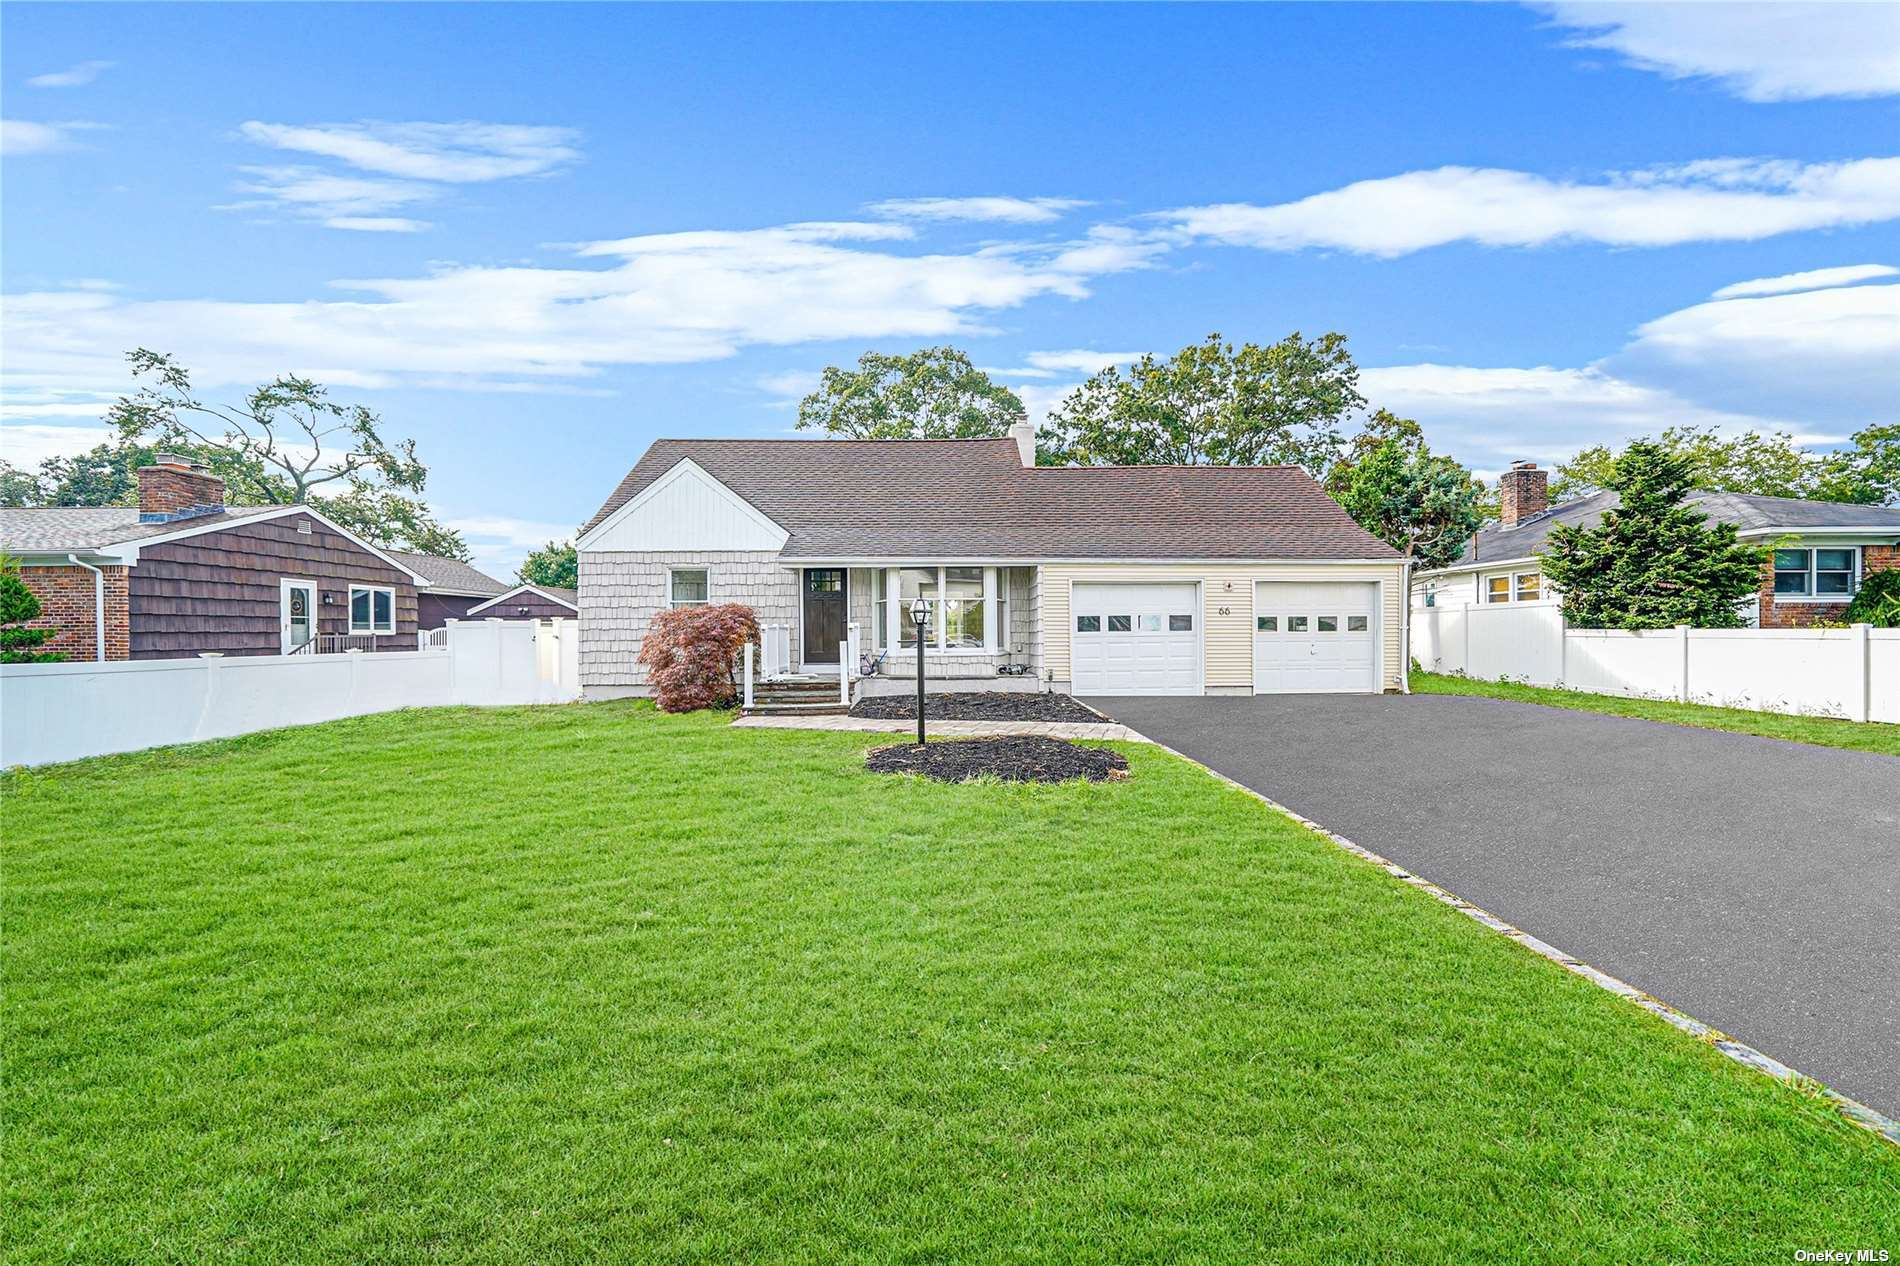 Magnificent Newly Renovated Lakefront Exp Cape With Over 2400Sqft Of Living Space In West Islip! This Beautiful House Offers Resort Like Amenities Starting From Inground Pool To Kayaking and Canoeing From Your Own Backyard! A Must See Move In Ready Rare To Find 4 Bedrooms, 2 Bath With A Huge Sun Drenched Family Room Facing The Lake Will Give You The Joy Of Living On The Lakefront. House Was Gutted And Redone, Starting From Updated Kitchen With Pull-out Shelves & Quartz Countertop With New Appliances, New Baths, New Hardwood Floors Throughout, New Plumbing, New Sheetrock With Insulation, Updated Electric & New 200 Amps Panel, Updated Water Heater & Boiler. Newly Finished Basement For Lots Of Entertainment, Updated Pool With New Liner & Pump And 2 Car Garage With Lots of Storage. Incredible Big Yard Having Views Of Sunset And Swans In The Lake. Enjoy The Life On The Lakefront Property Like No Where Else! Ideal Location! Close To Major Hwys, LIRR And The Great Beaches Of The South Shore!